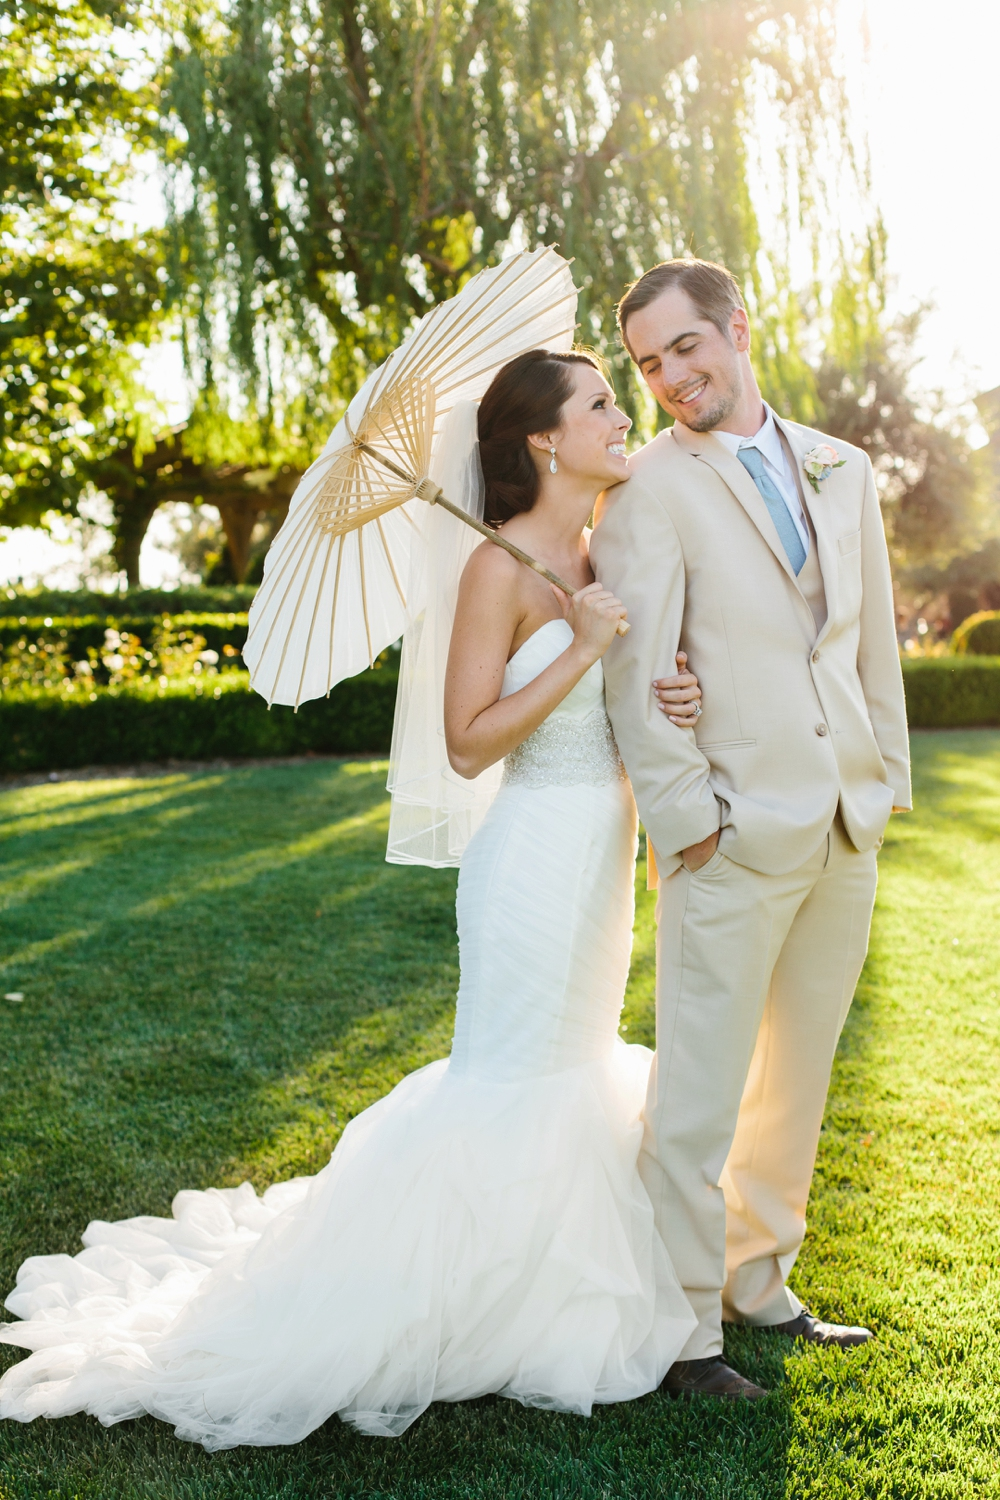 wedding photographers in orange county, california